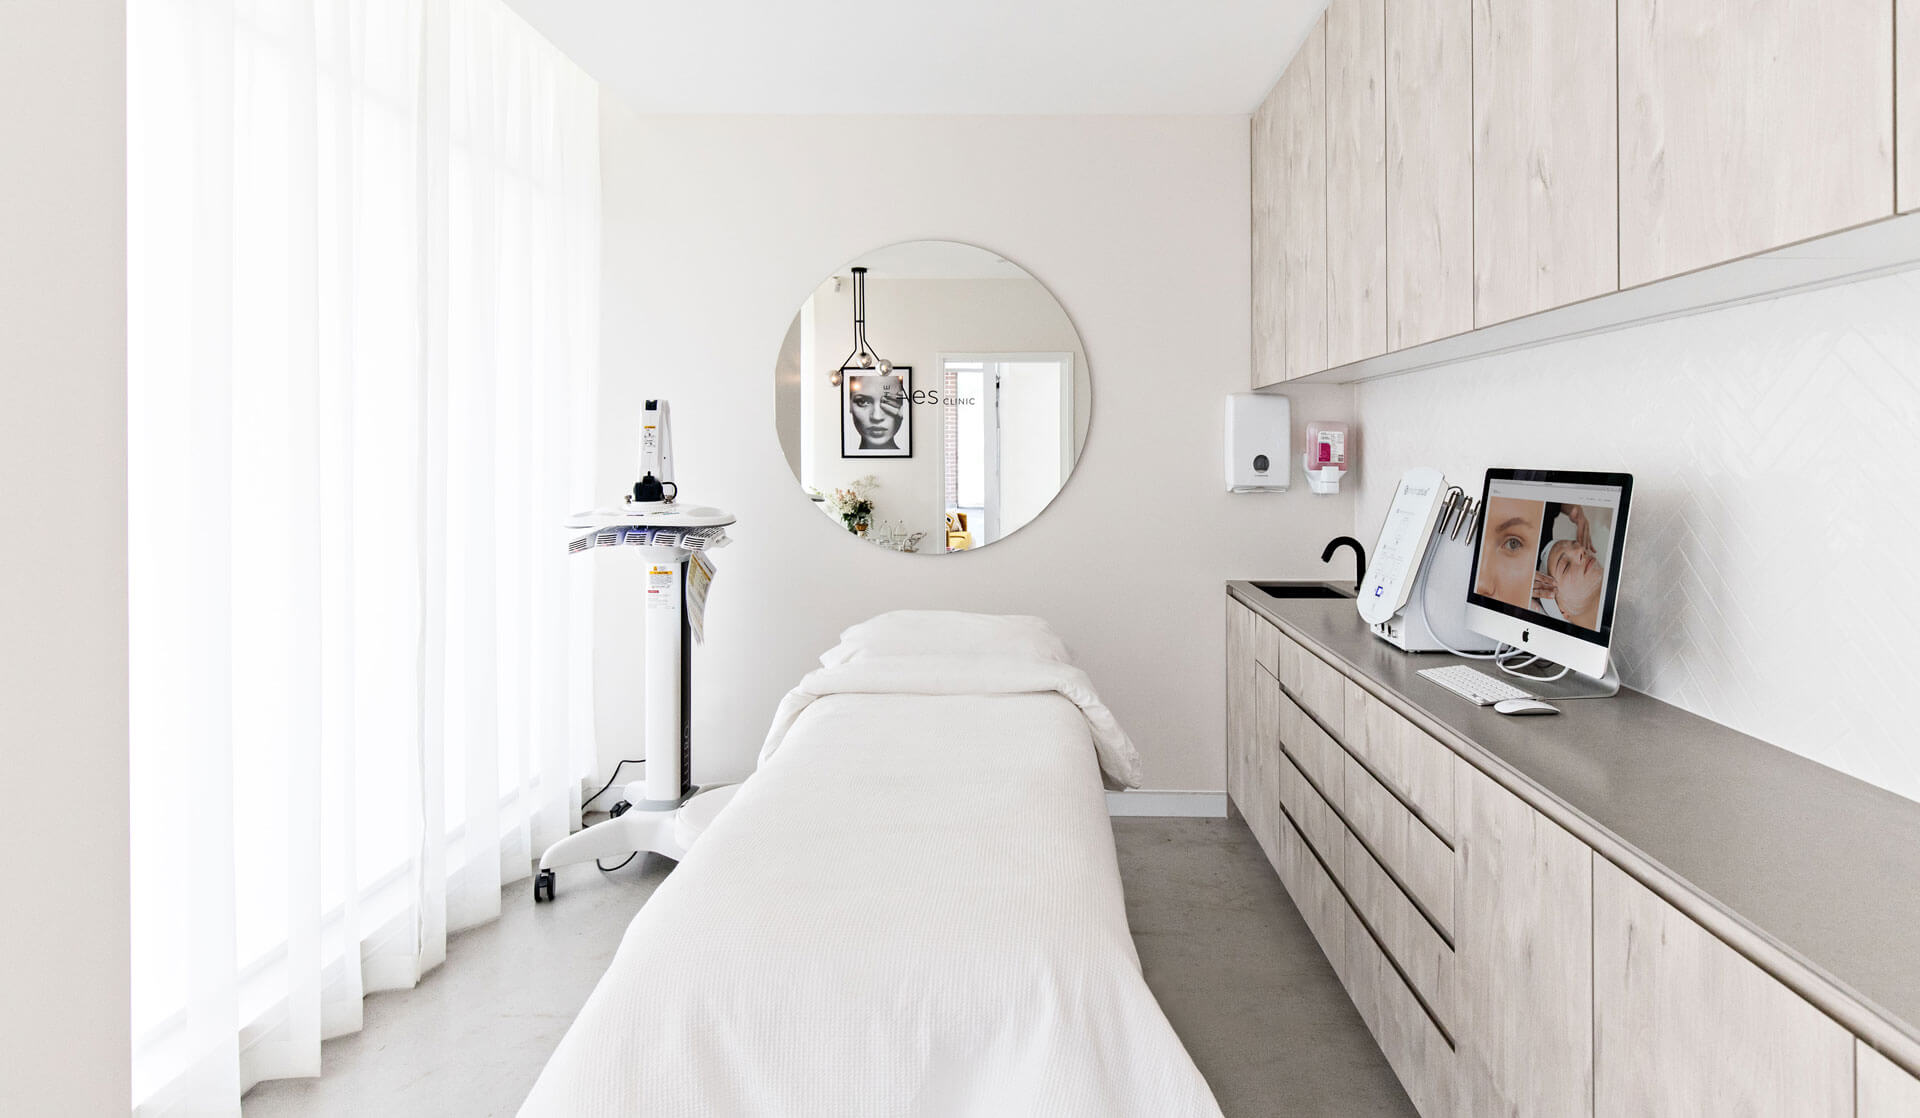 Interior design of cabinets in beauty clinic room